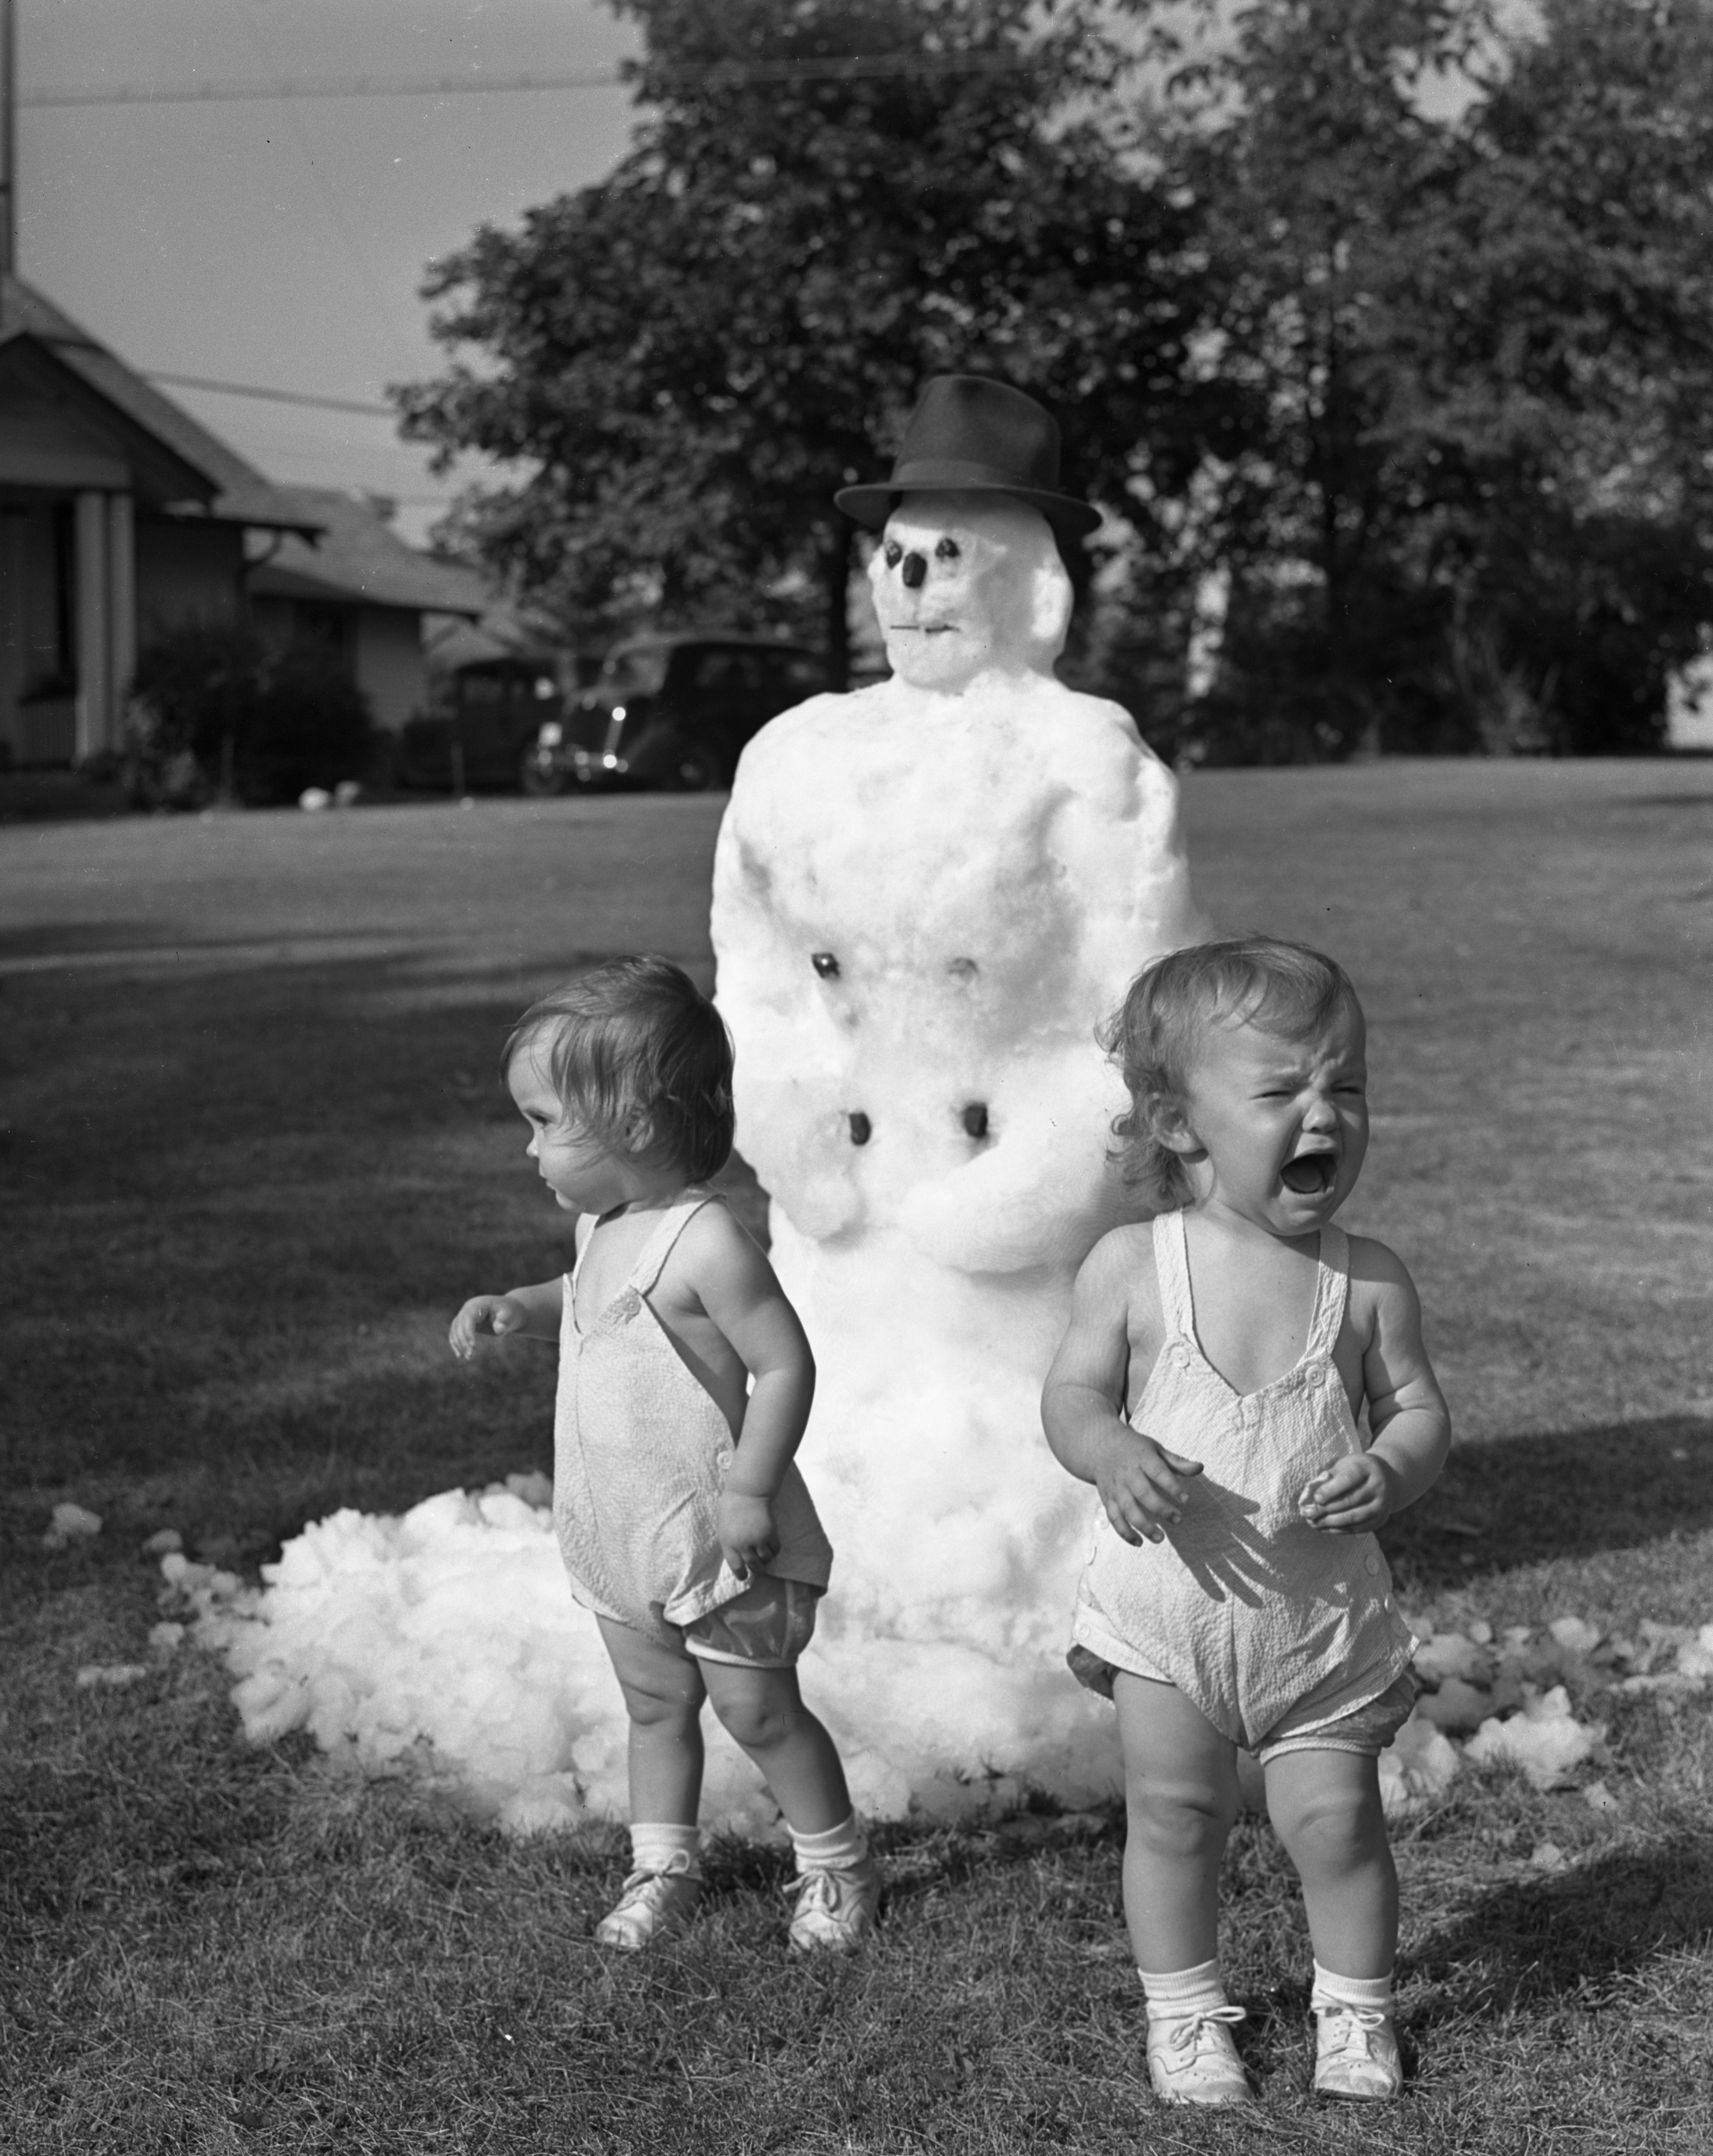 Snowman in Summer promotes Dhu Varren Farms Inc., 1939 image